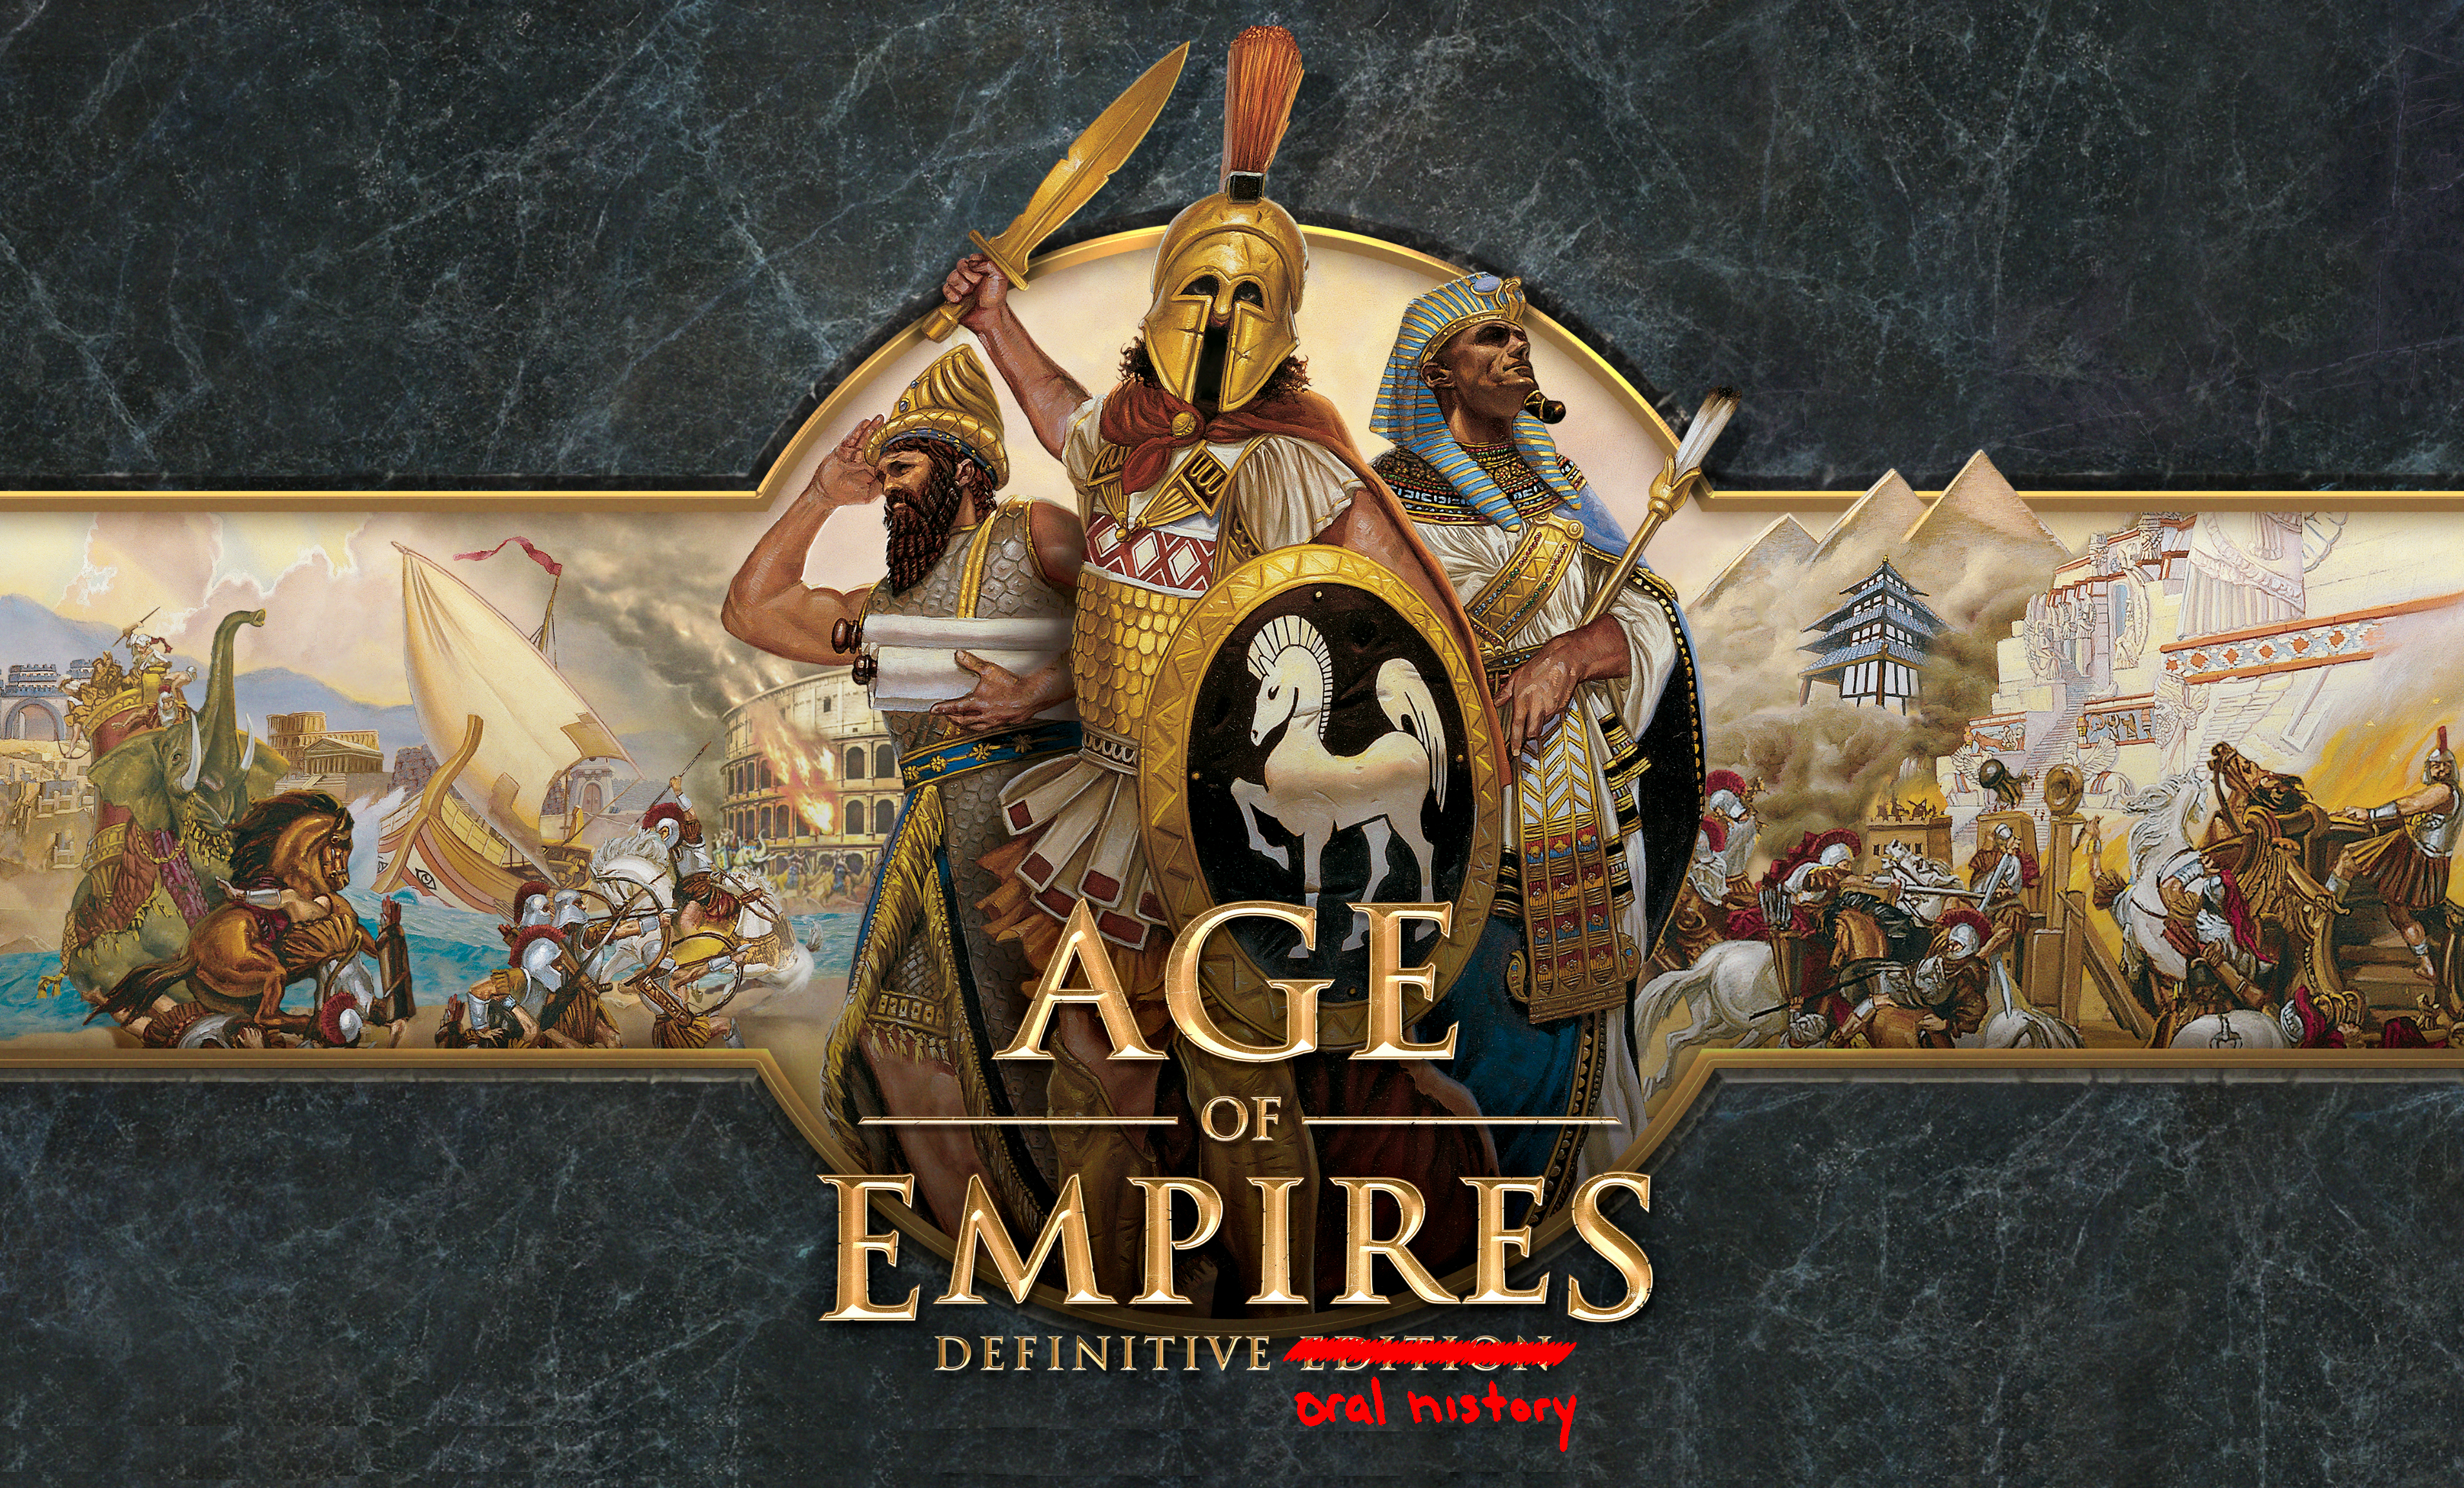 Enlarge / We've enjoyed Age of Empires so much, we'd probably play this  version, too.